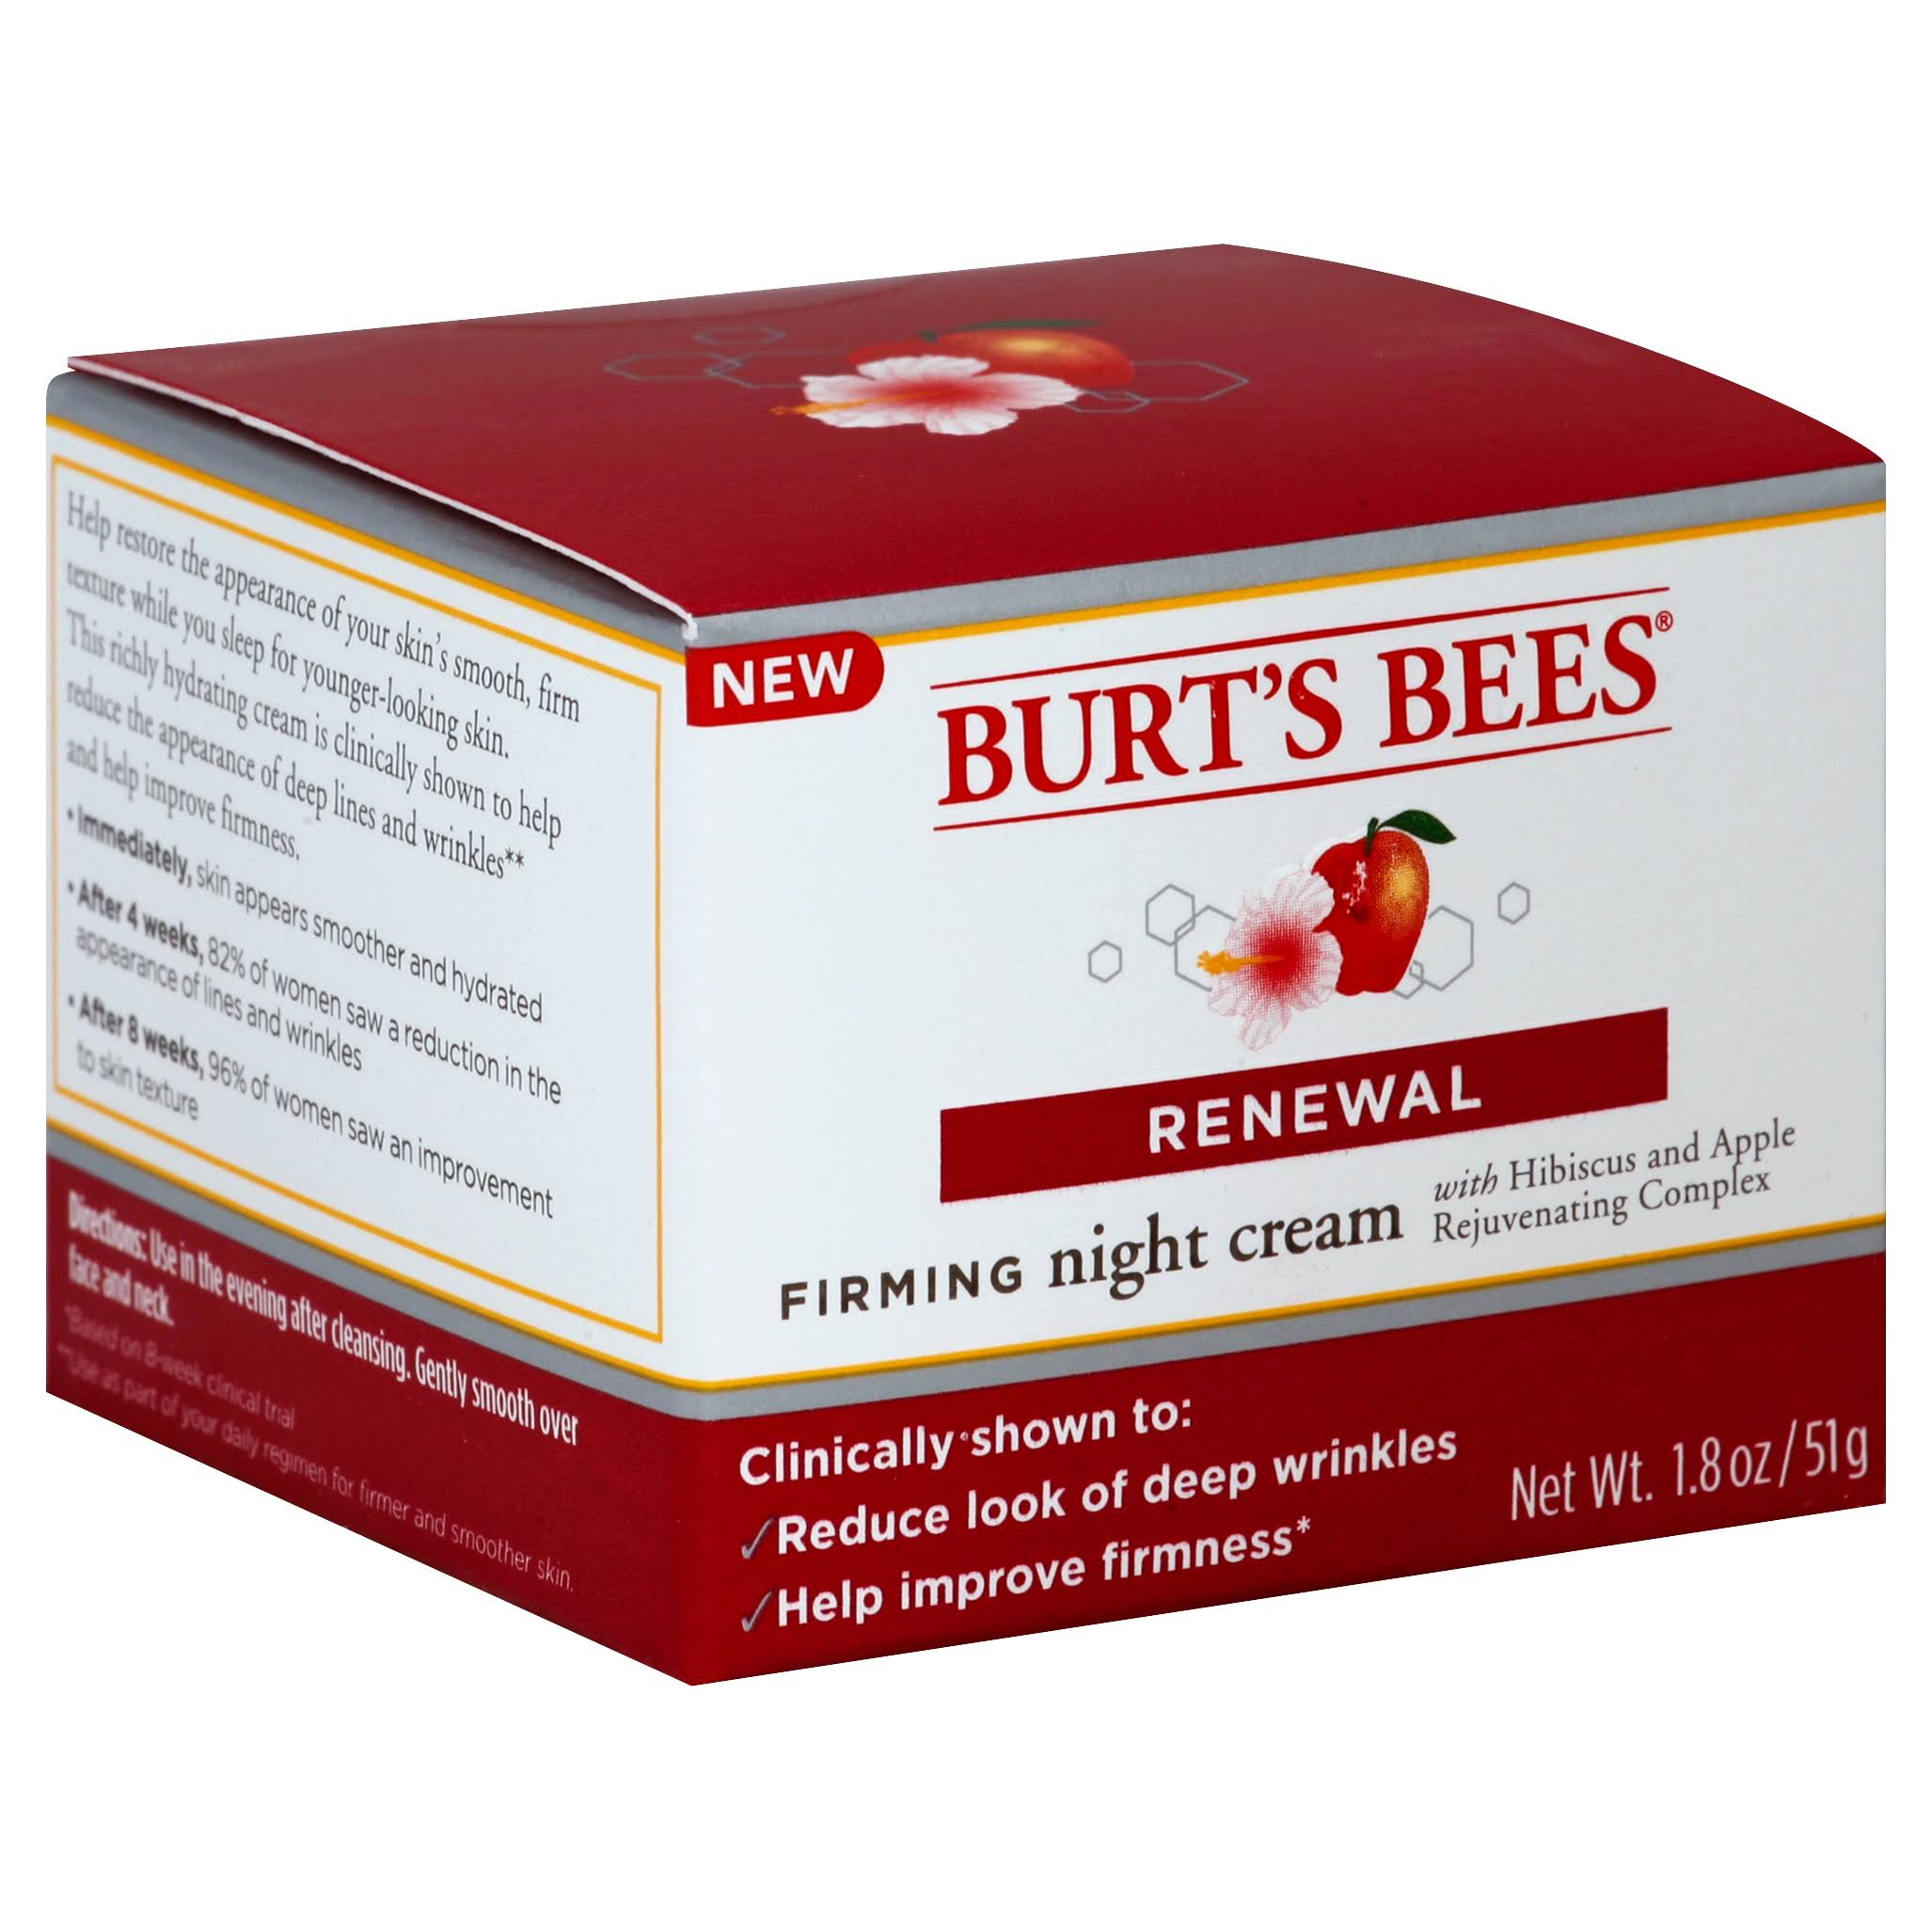 Burt's Bees Renewal Firming Night Cream - 1.8 oz